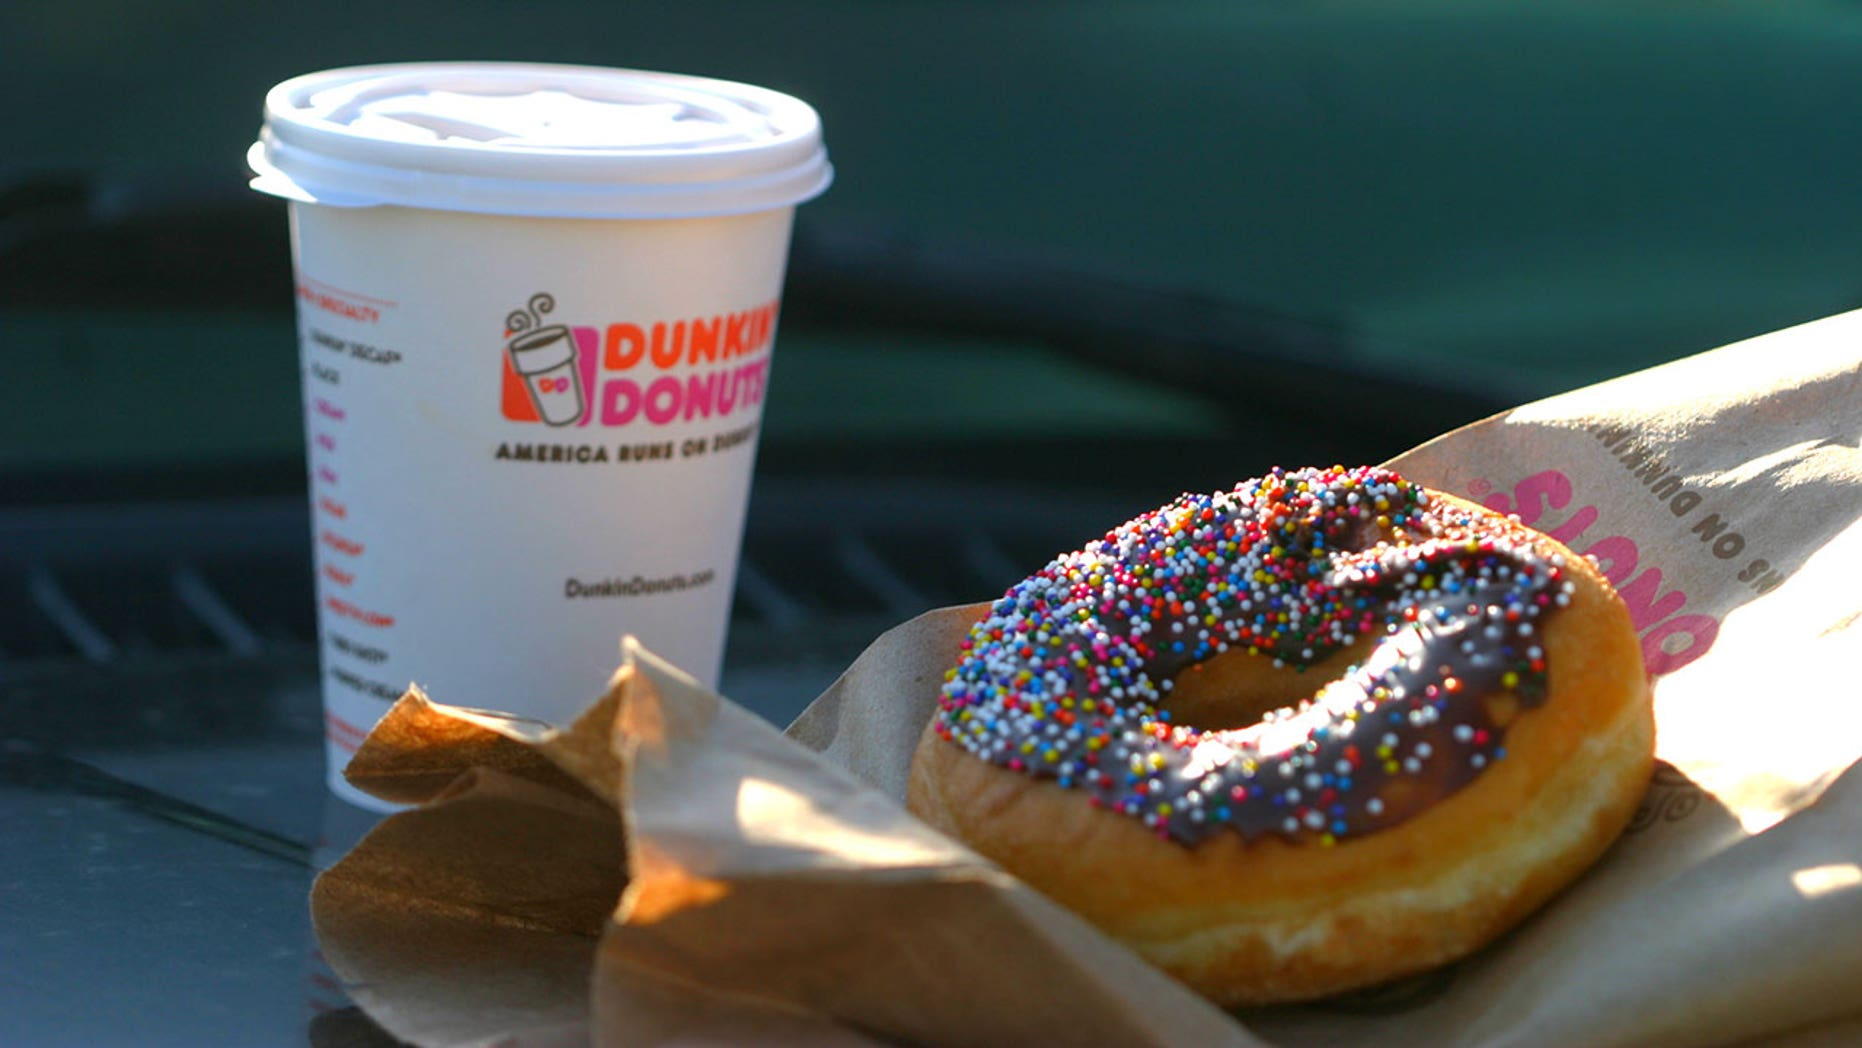 """Dunkin' Donuts confirmed that a new store in Pasadena will display signage that simply reads """"Dunkin'."""""""